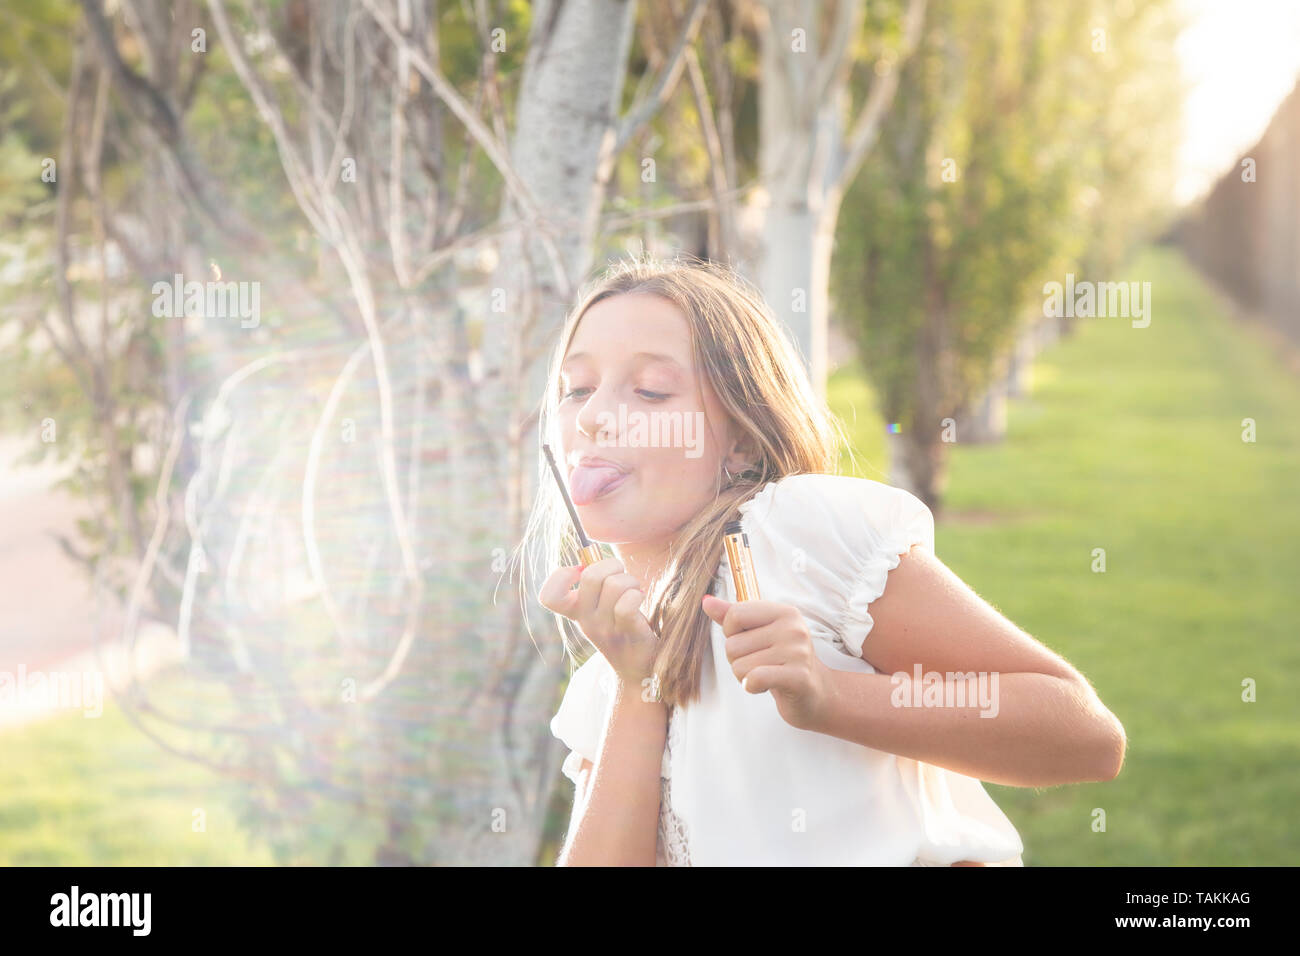 Puberty High Resolution Stock Photography and Images - Alamy